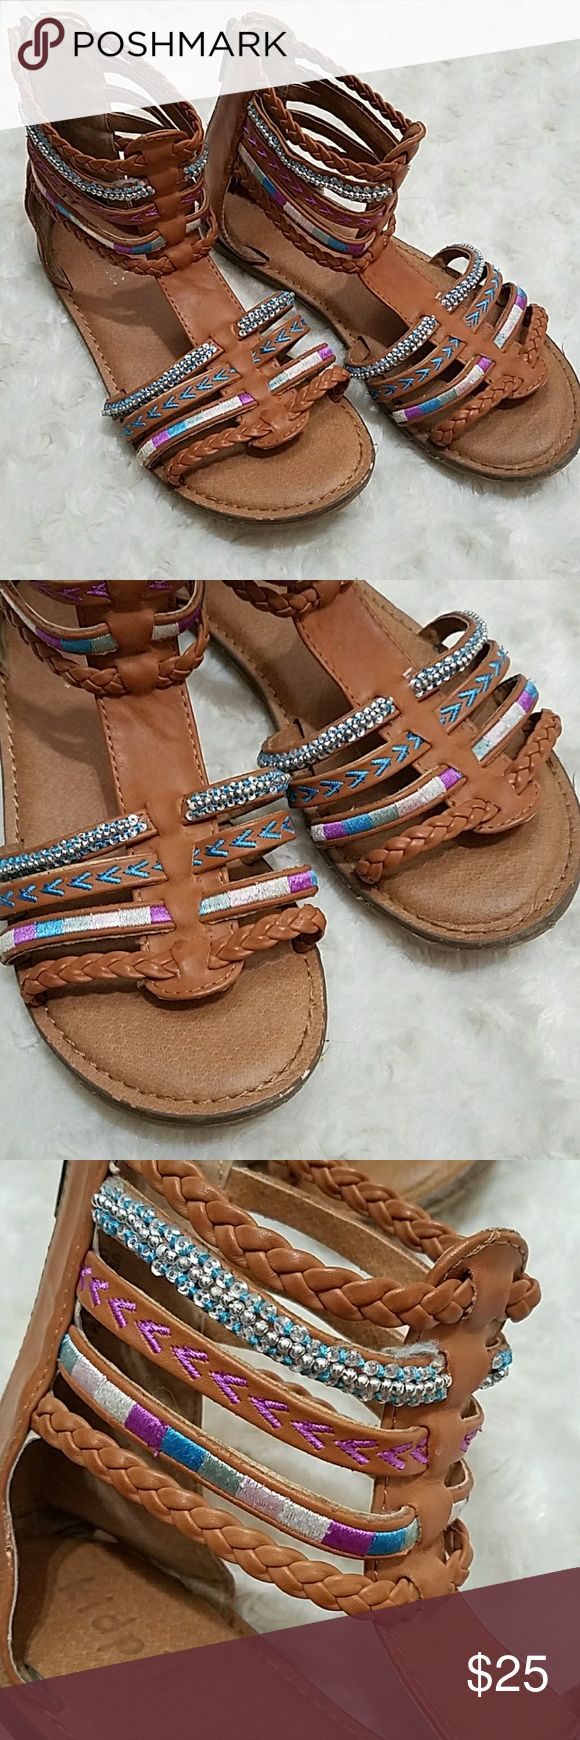 ❄❄Kidpik❄❄ Size 3 Sandals Good preowned condition. Size 3.  10% of proceeds are going to a local charity. Anything else marked with ❄❄ is also eligible for charity donation! Happy New Year, thank you for shopping my closet kidpik Shoes Sandals & Flip Flops